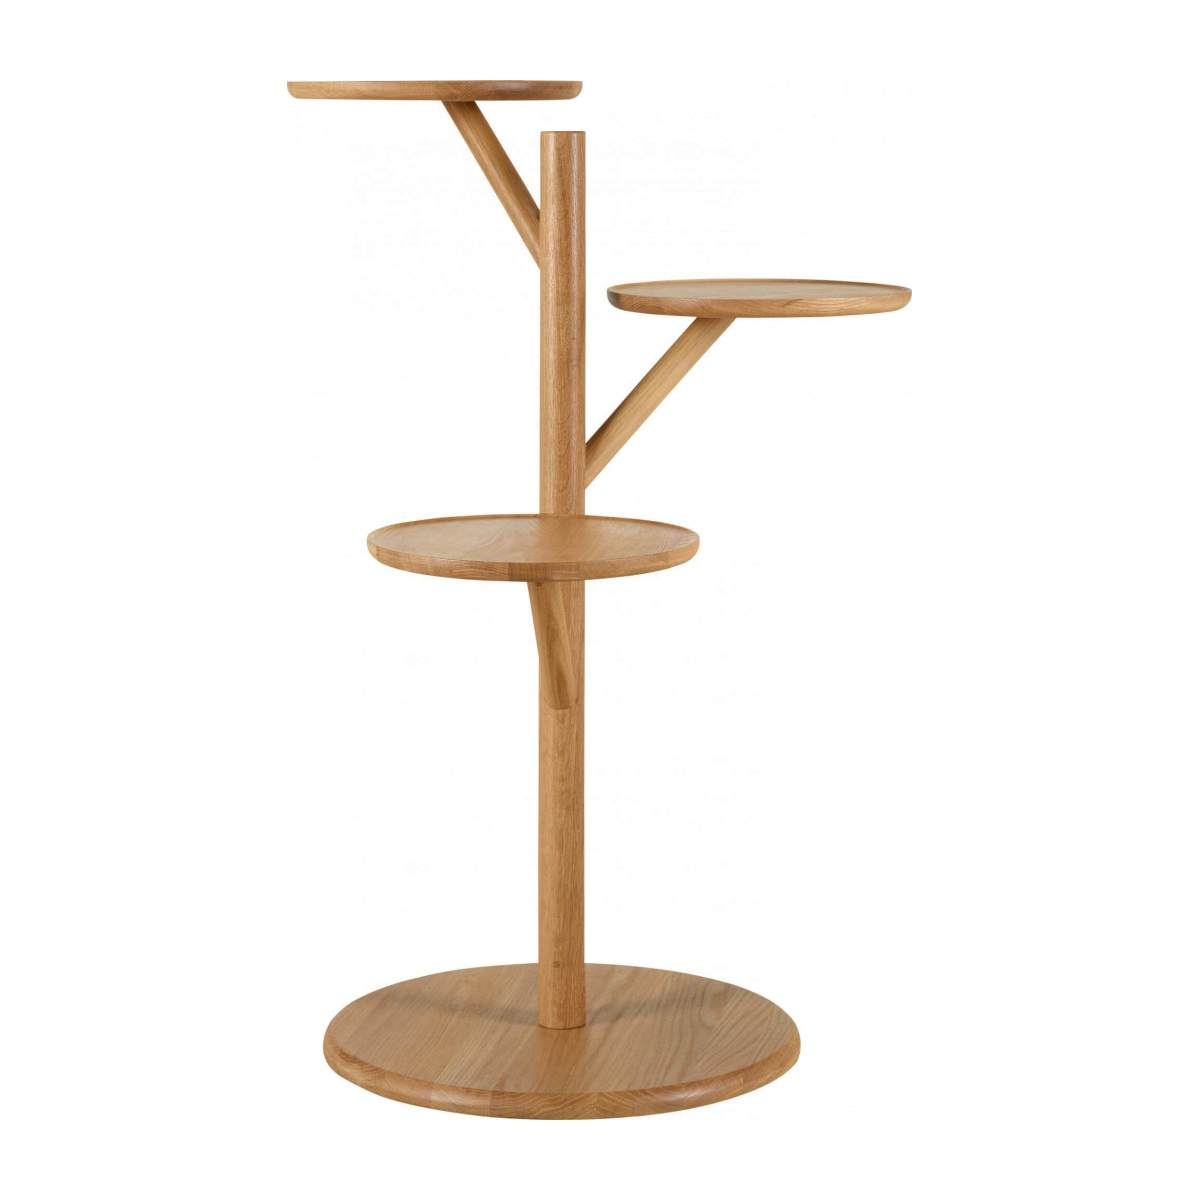 Oak side table  - Design by Baptiste Lanne n°1